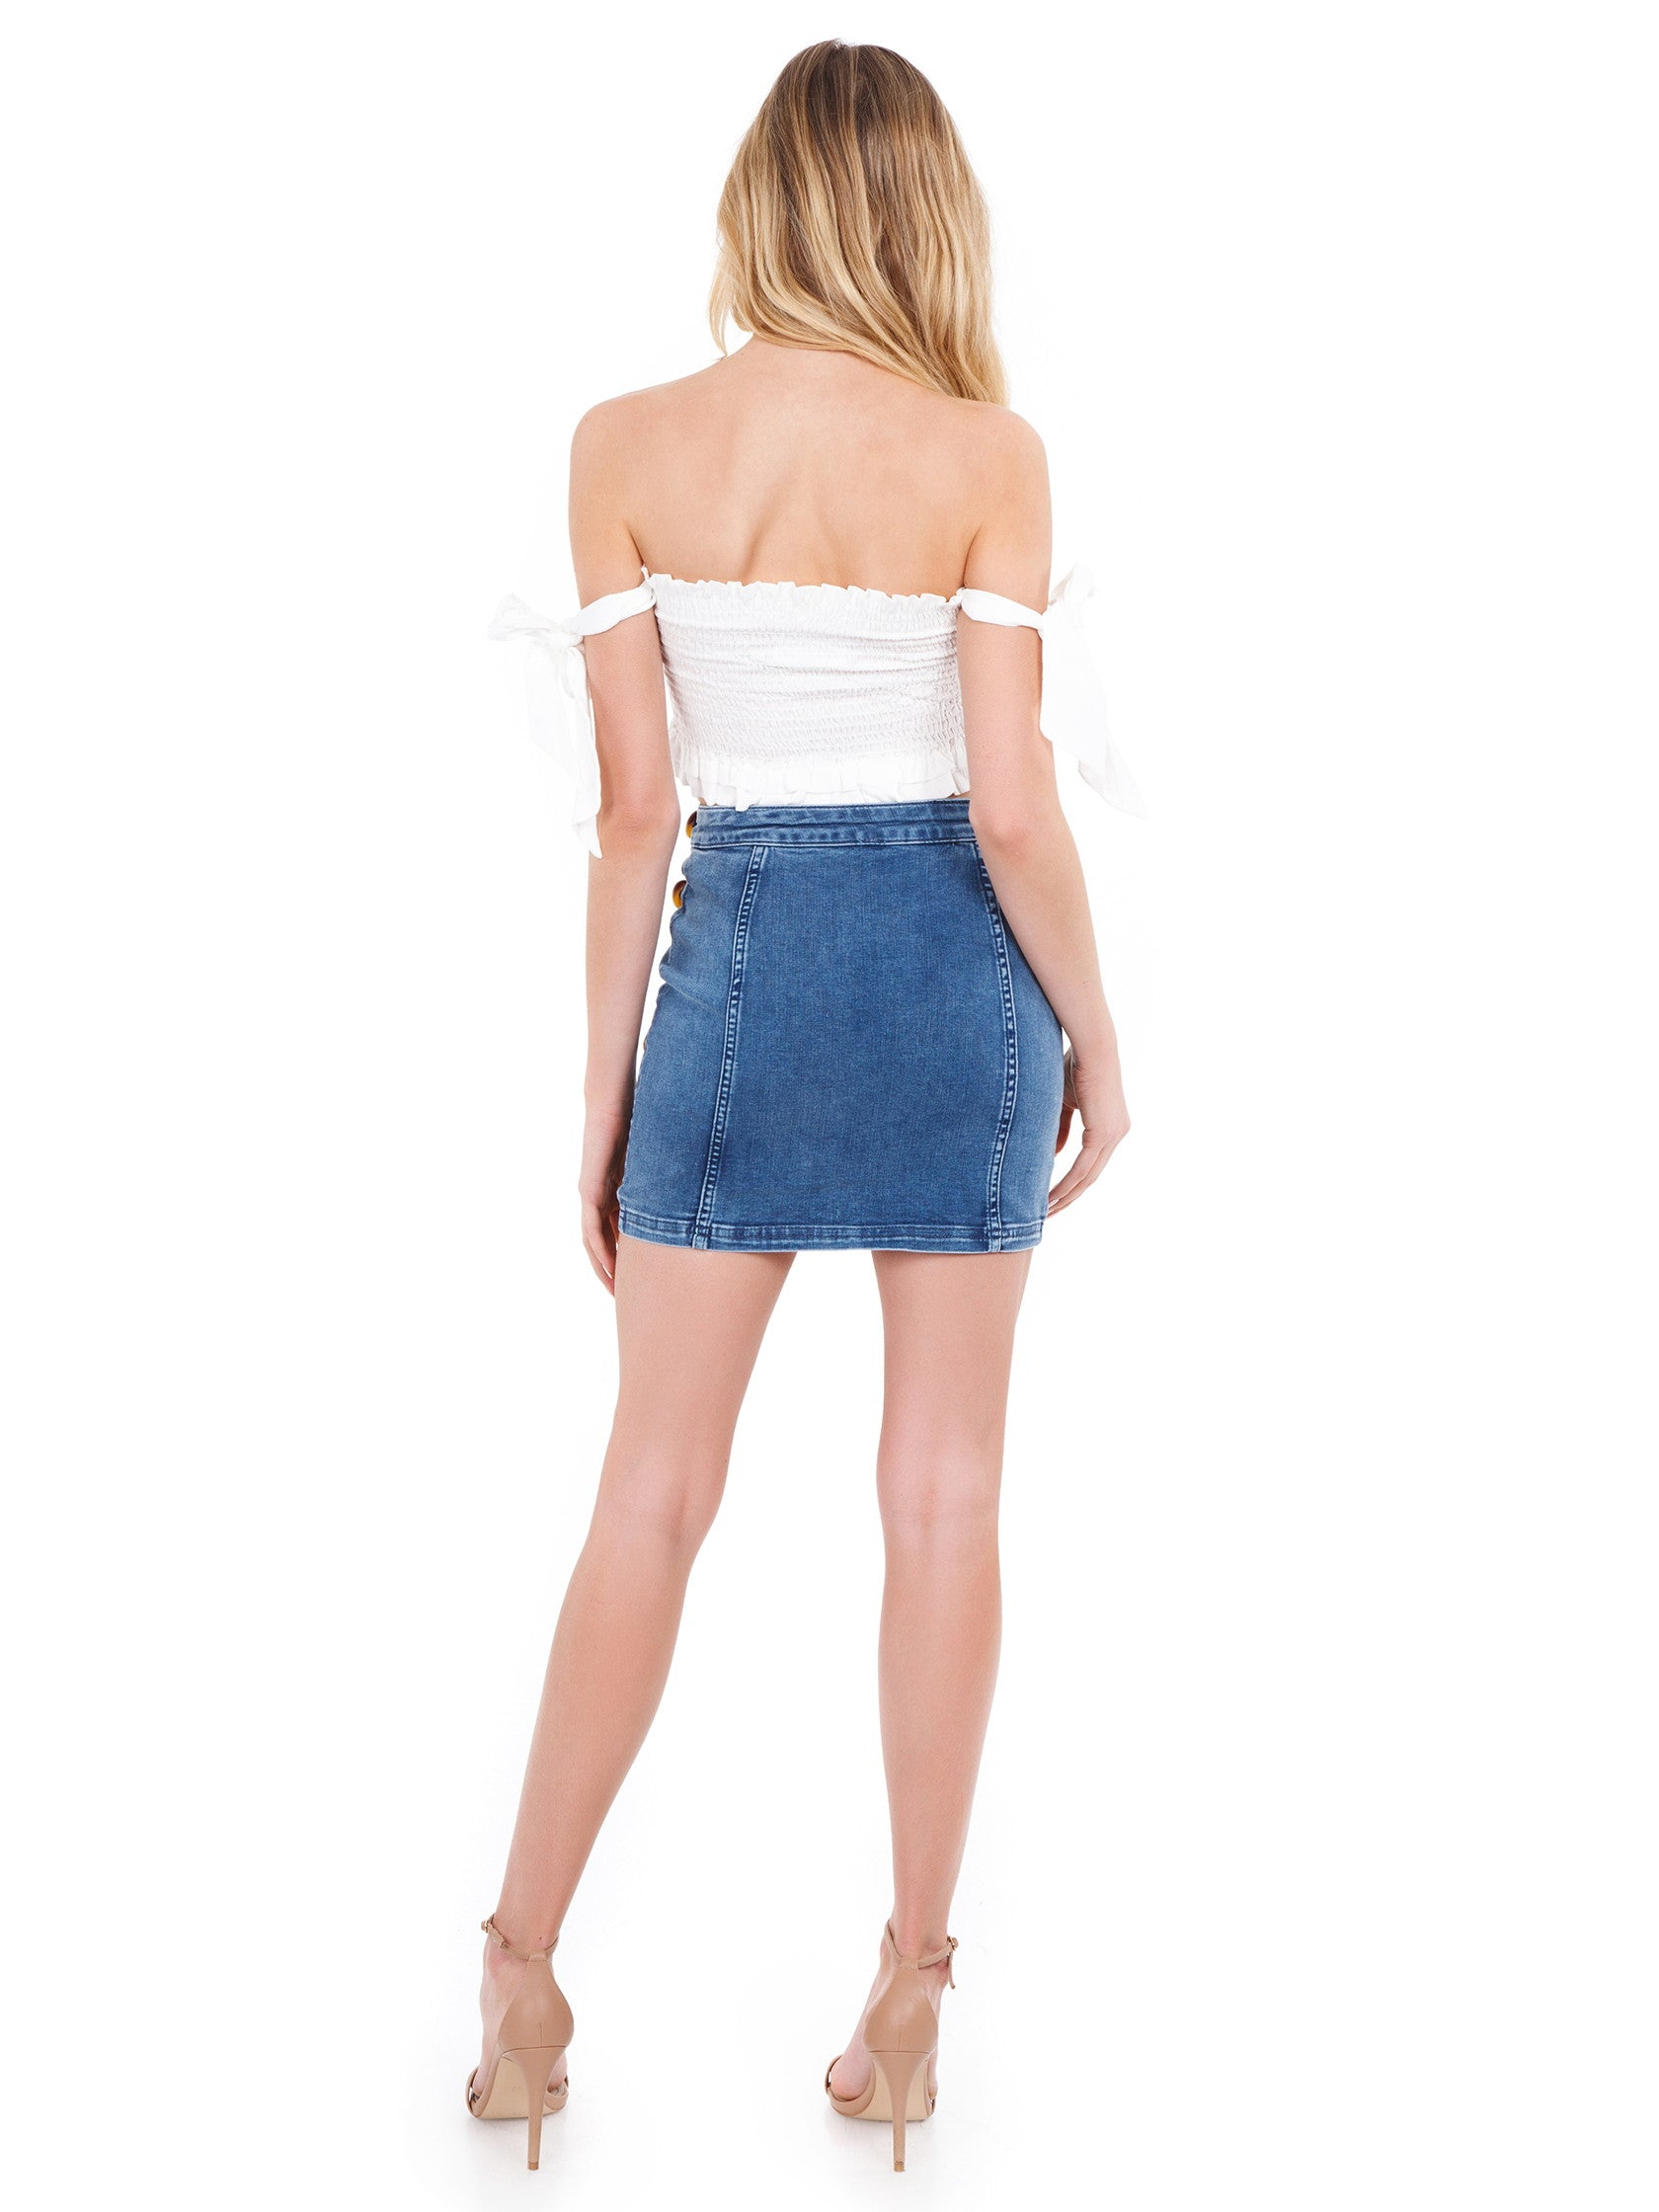 Women wearing a skirt rental from Free People called Little Daisies Denim Mini Skirt